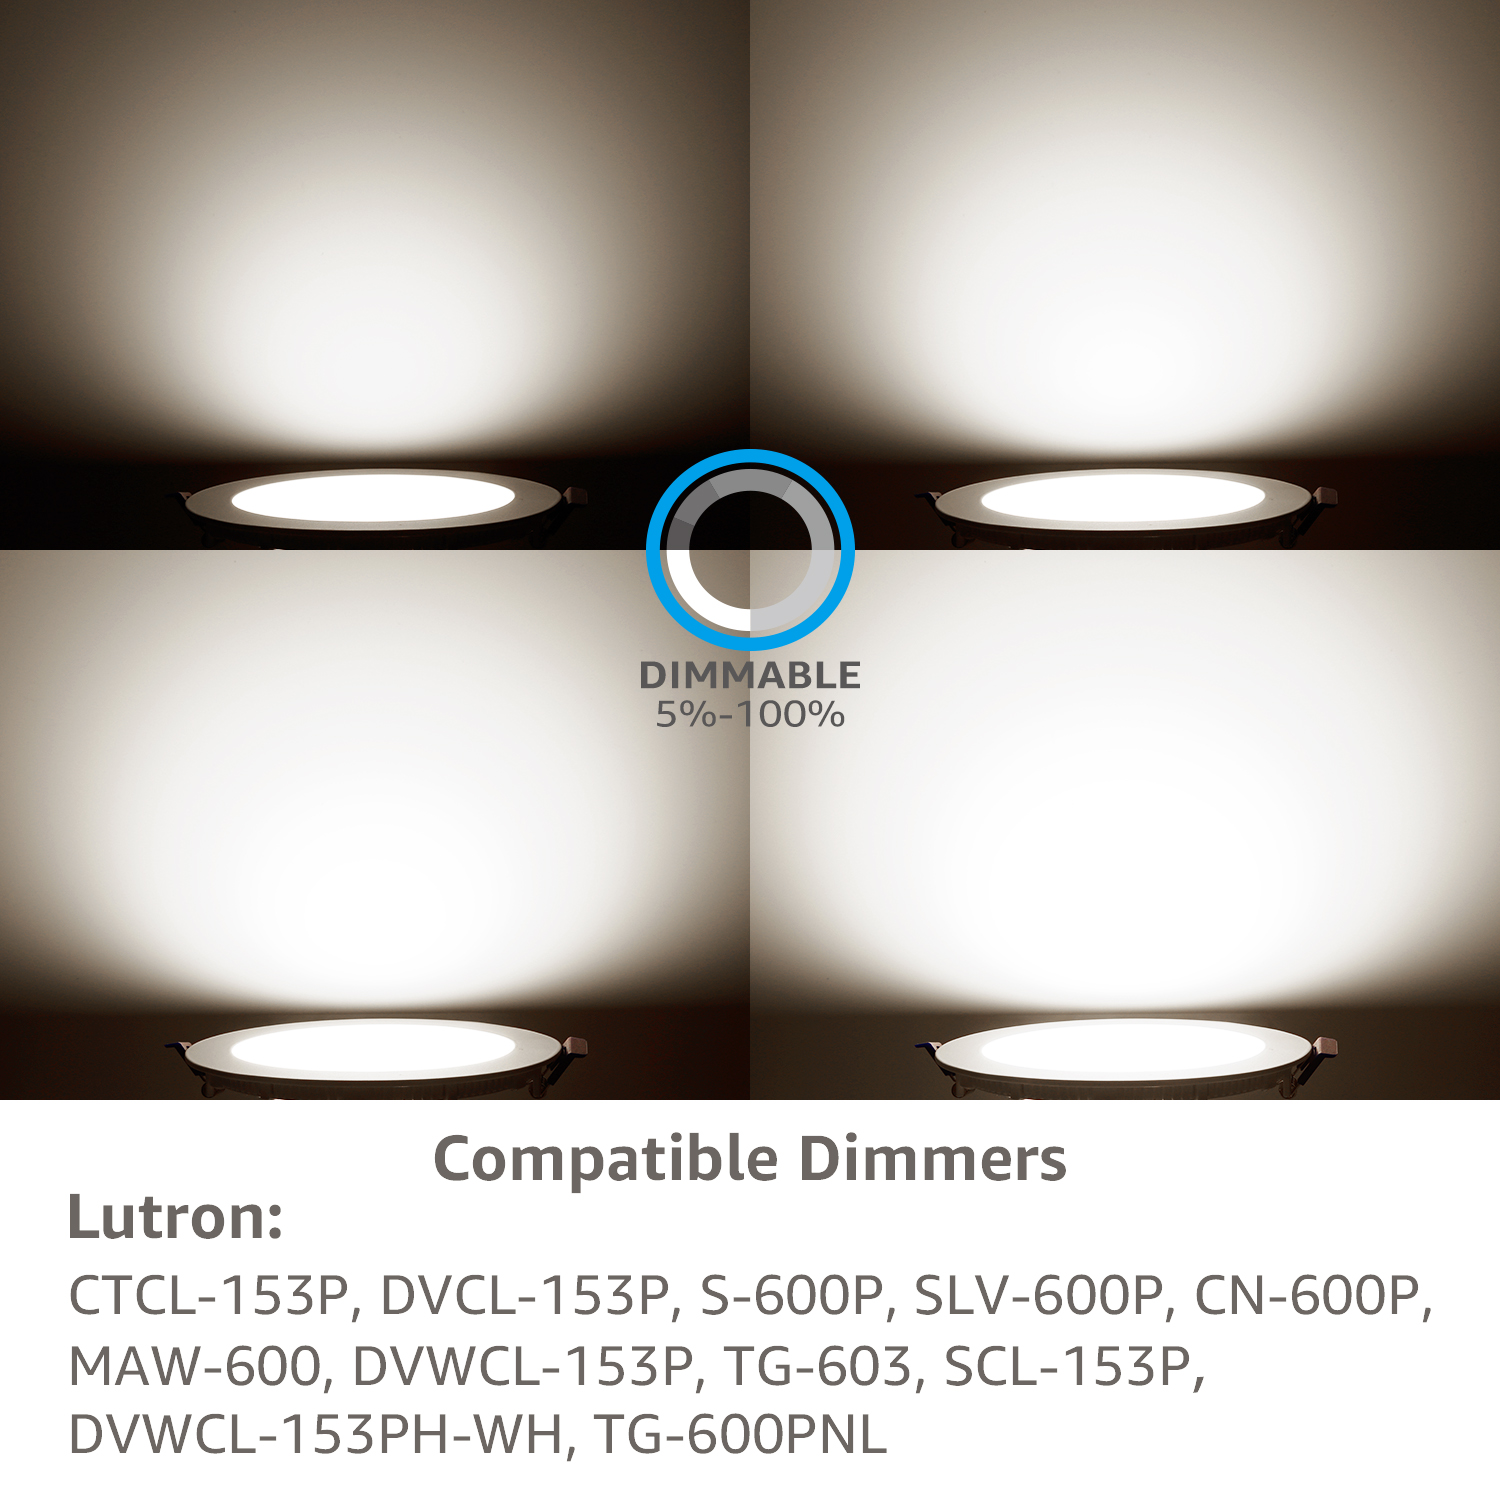 650lm 80W Equivalent ETL and Energy Star Certified 3000K Warm White Wafer Light TORCHSTAR 10W 4 Ultra-Thin Recessed Ceiling Light with Junction Box Pack of 2 Dimmable Downlight